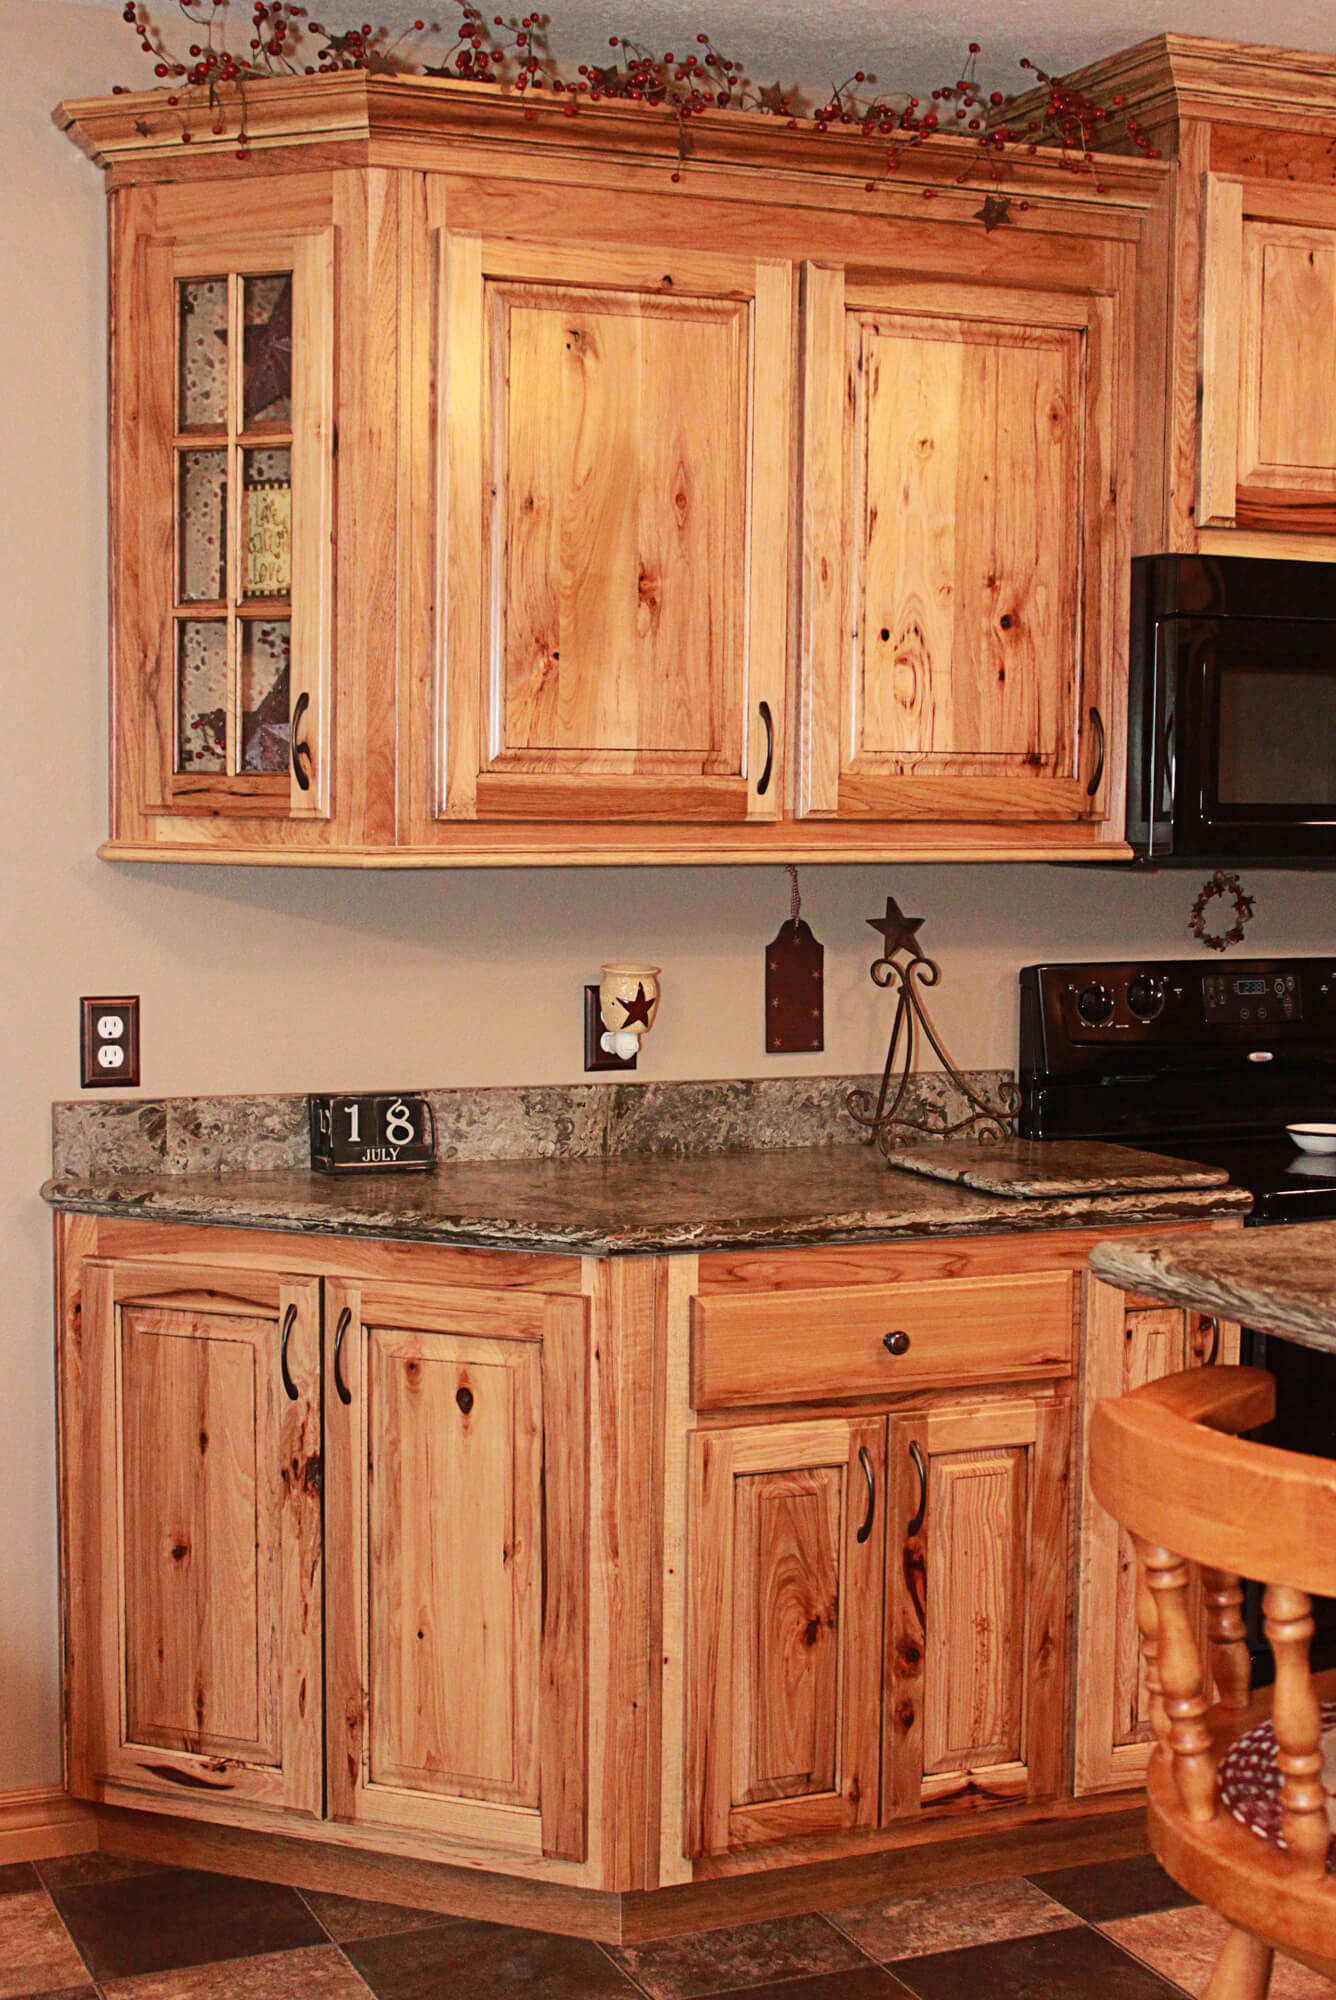 custom-kitchen-cabinet-rustic-hickory-4 Homecrest Kitchen Cabinets